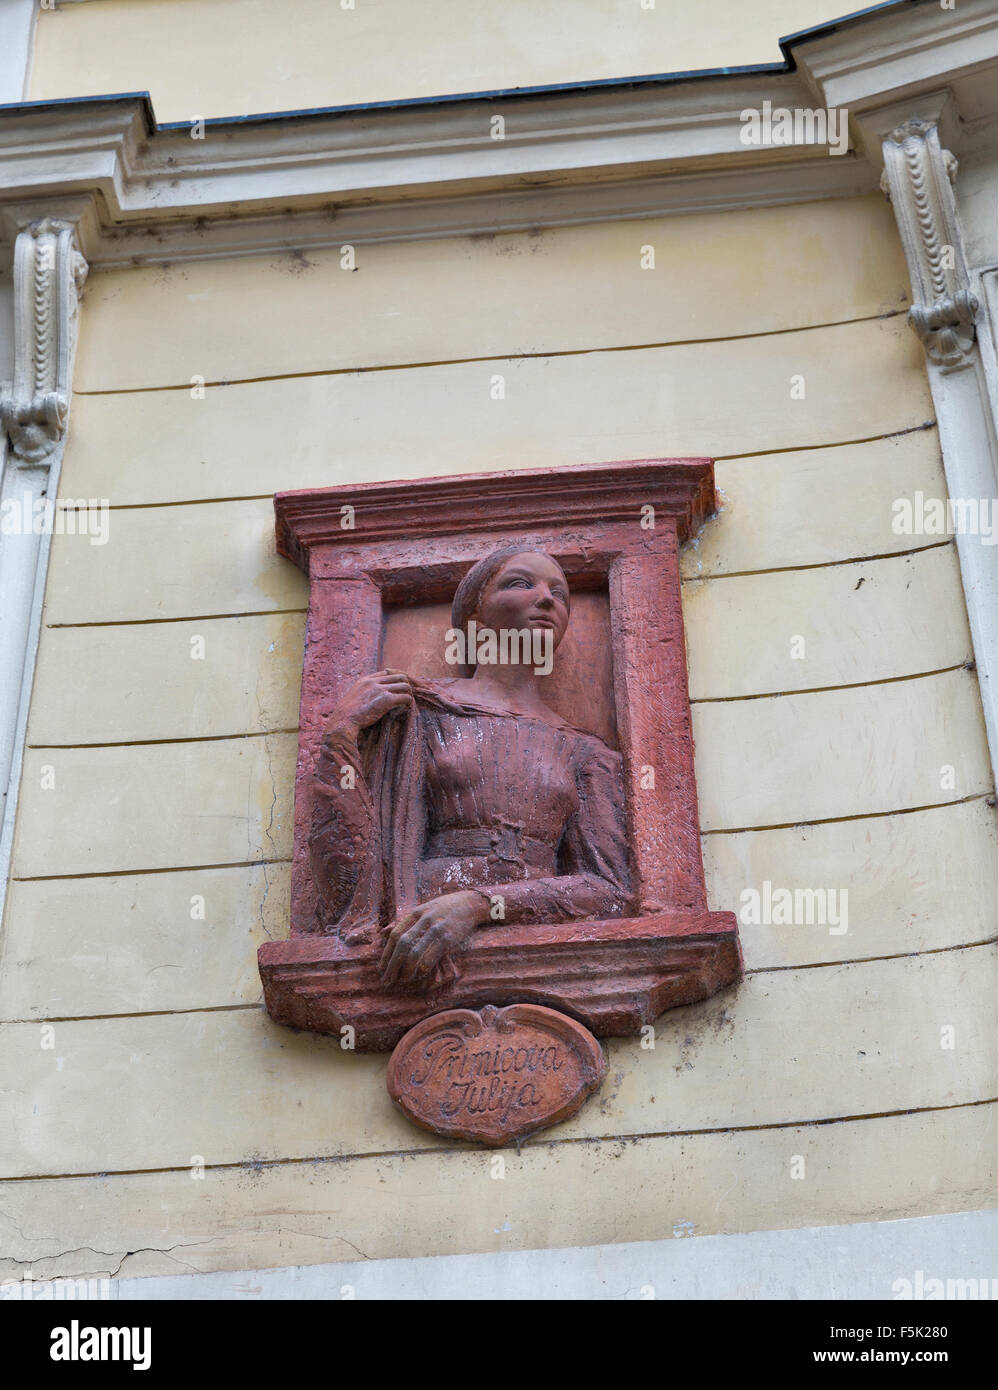 Ancient bas relief on building wall in Ljubljana, Slovenia. Primicova Julija was unrequited love of famous Slovenian - Stock Image